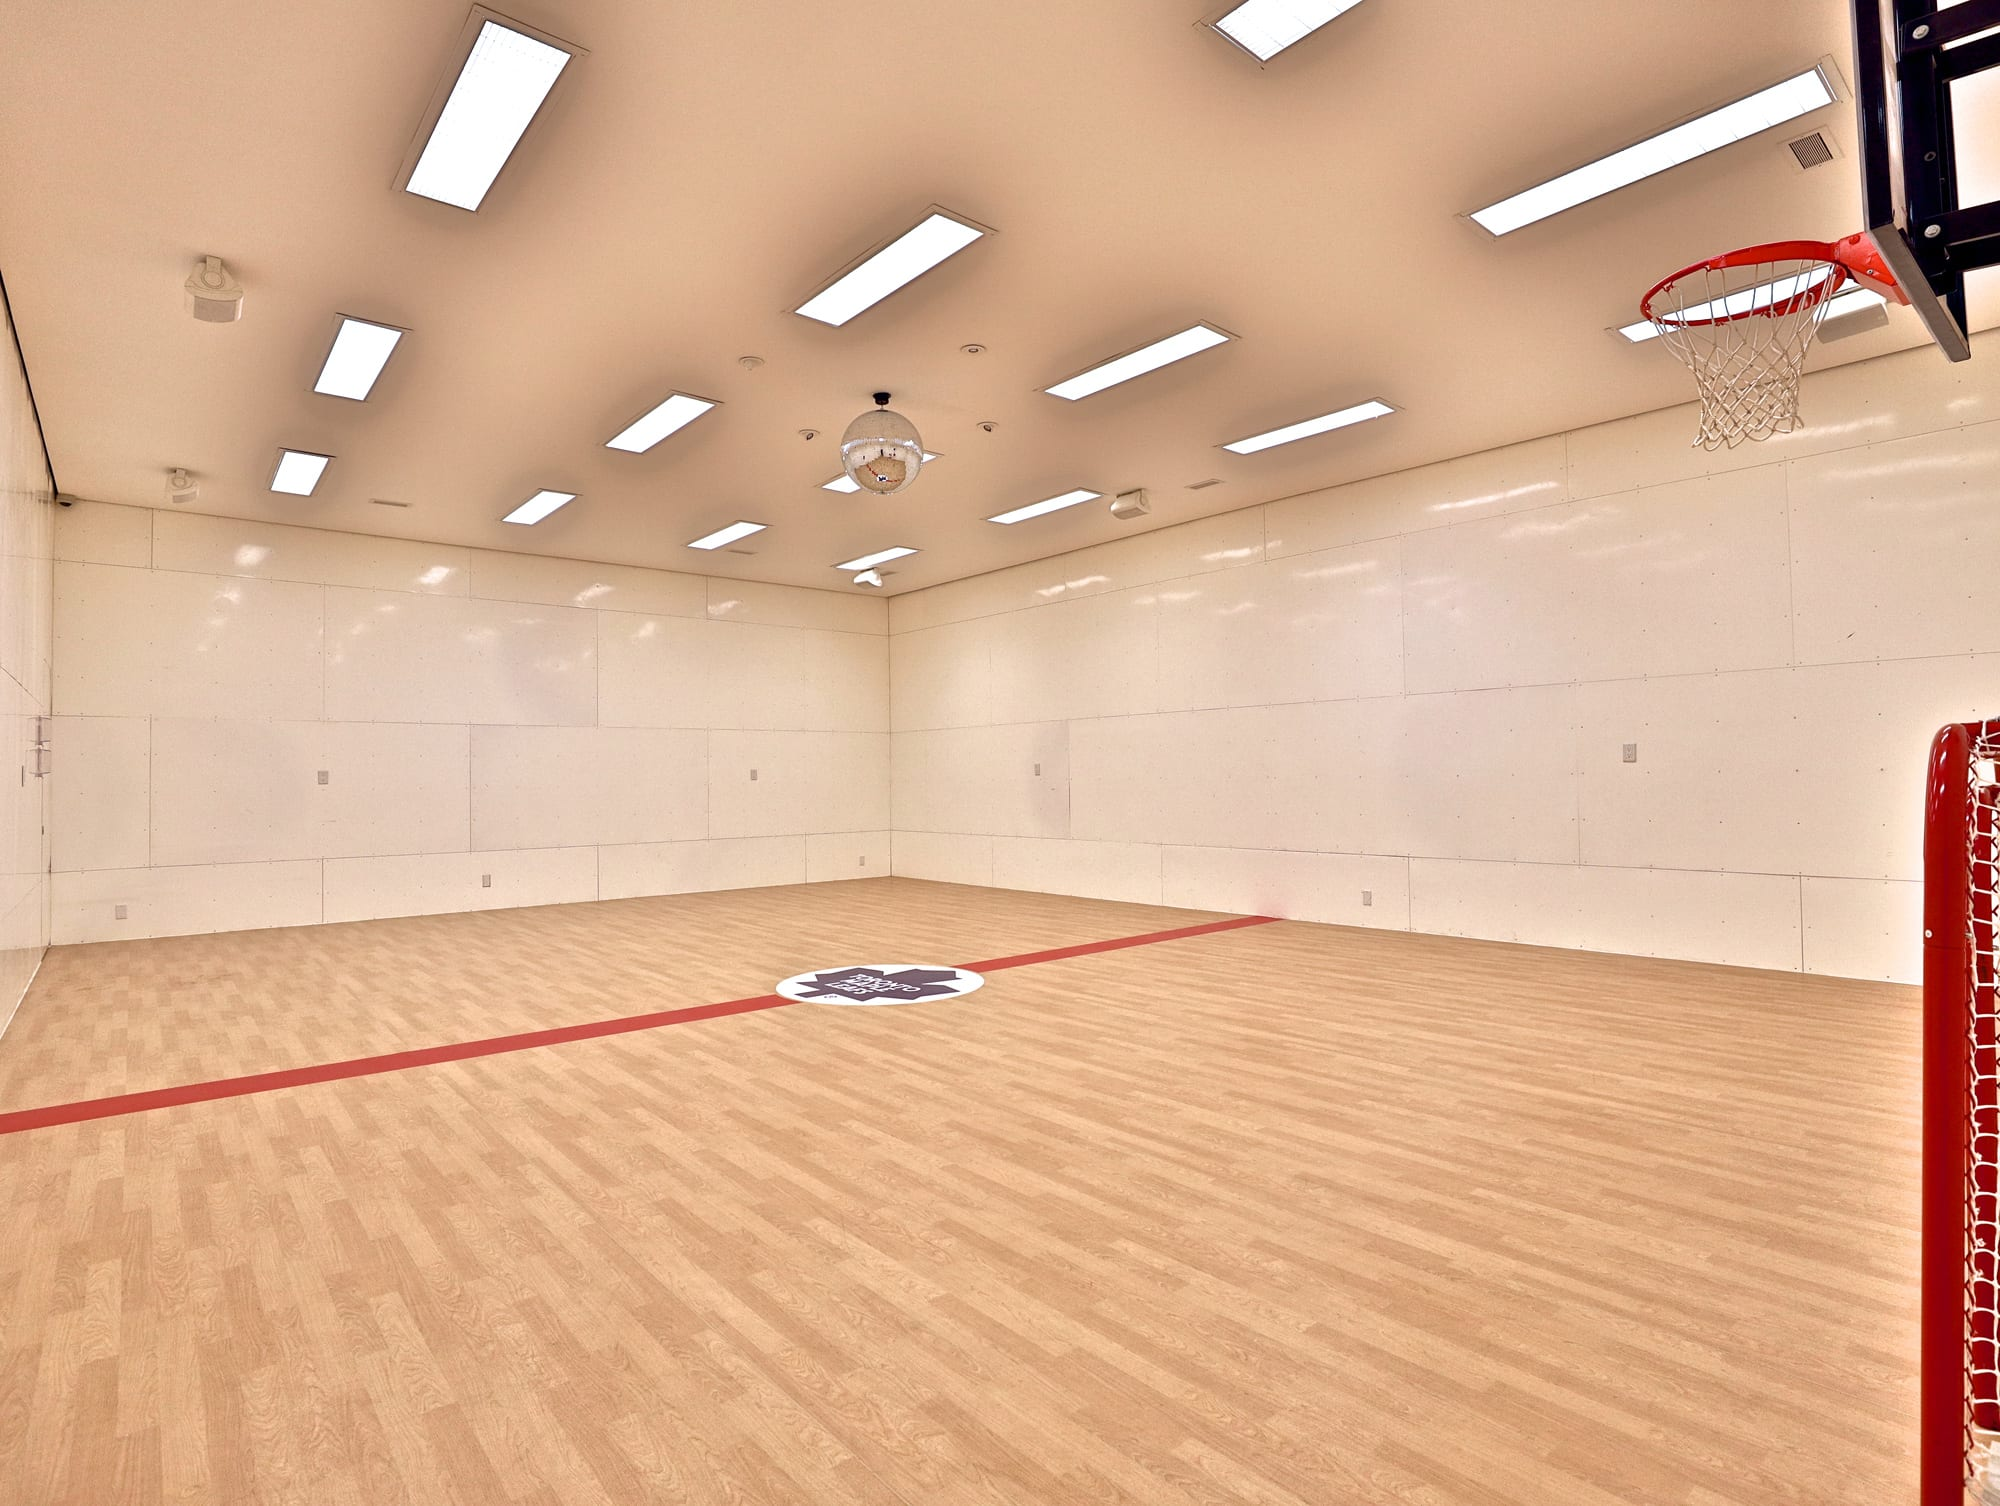 10 6 Million For A Hoggs Hollow Mansion With Its Own Indoor Basketball Court